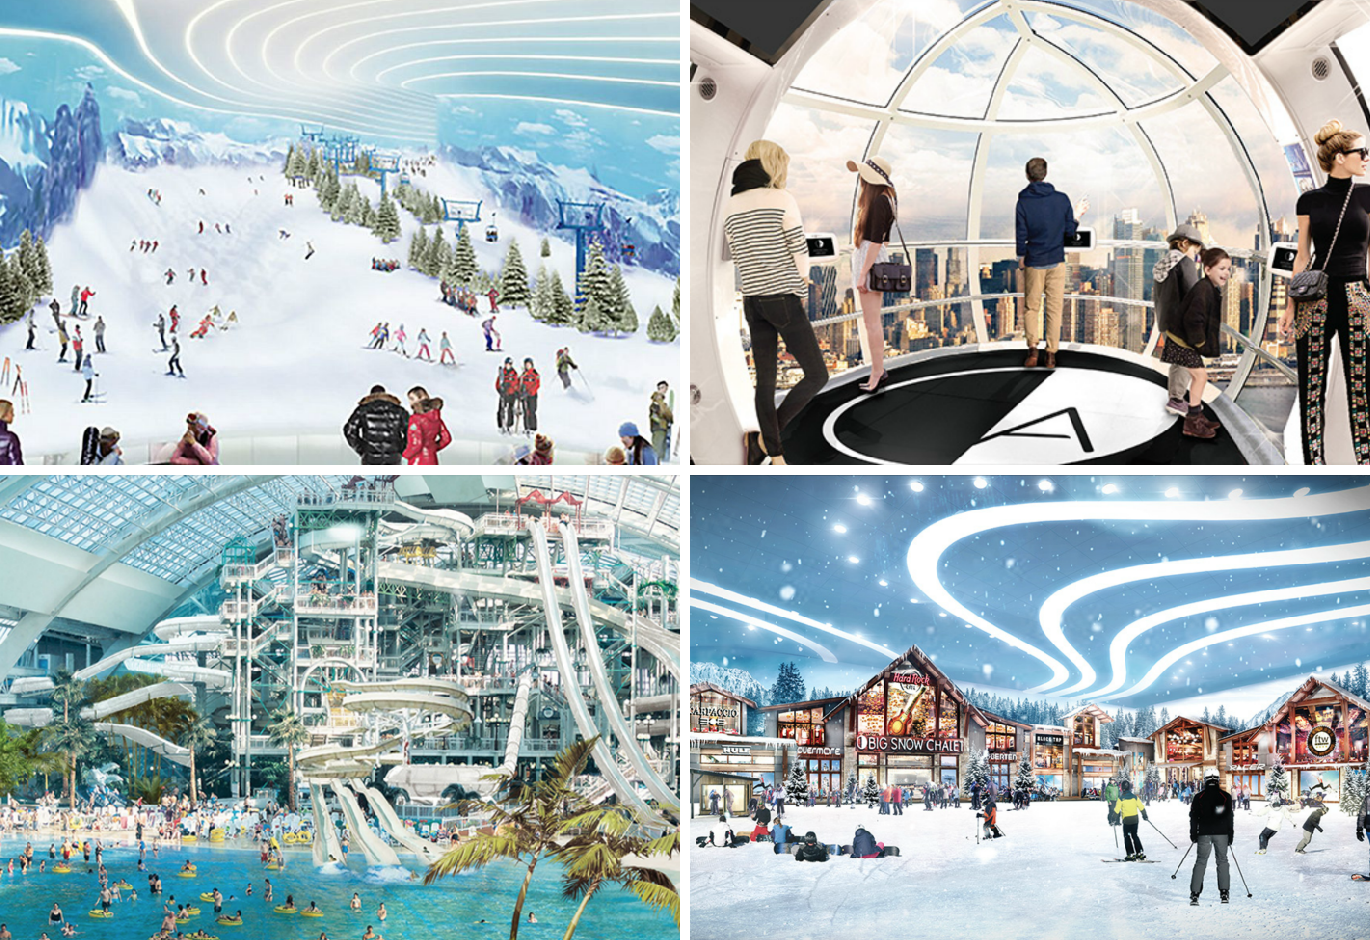 see the 800-foot indoor ski slope, water park, and observation wheel